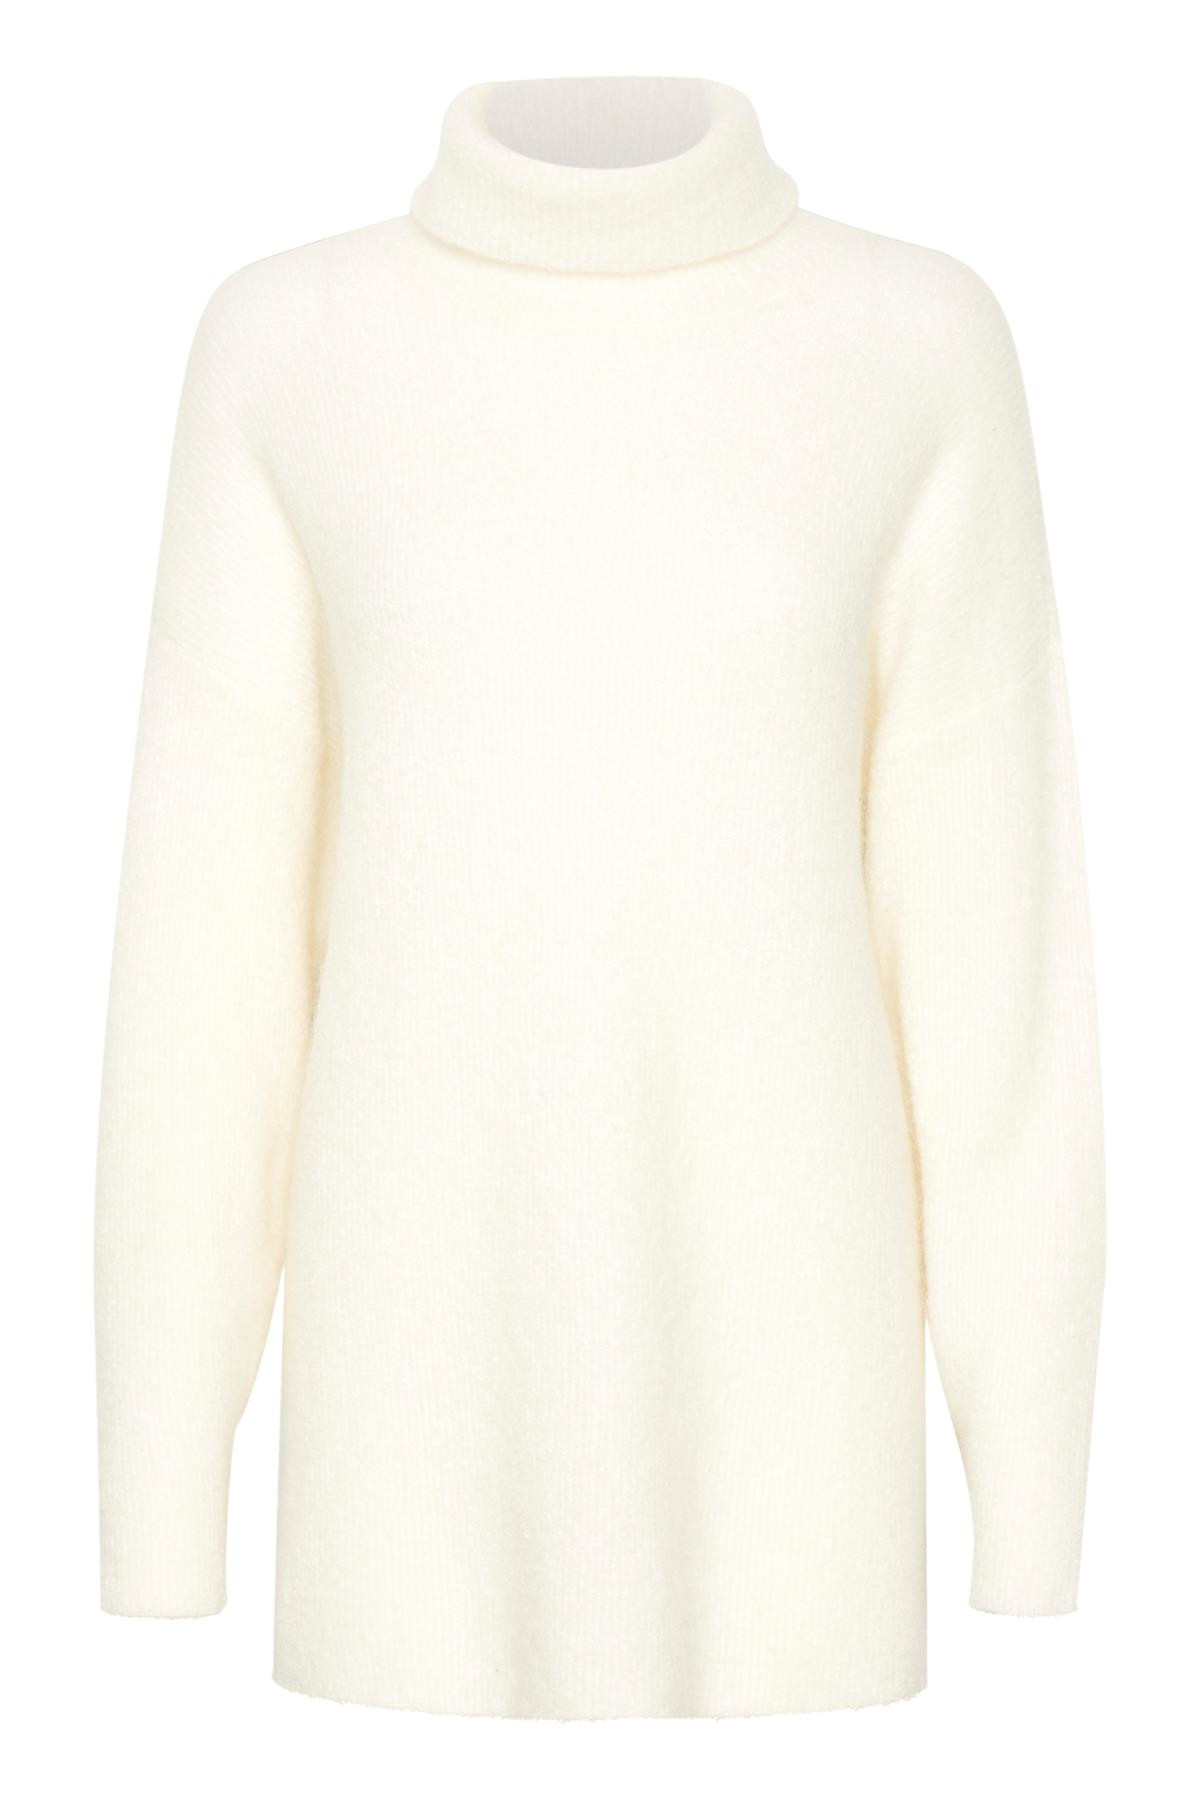 Image of   GESTUZ LIVIA SOLID ROLLNECK (Cloud Dancer 90075, M)